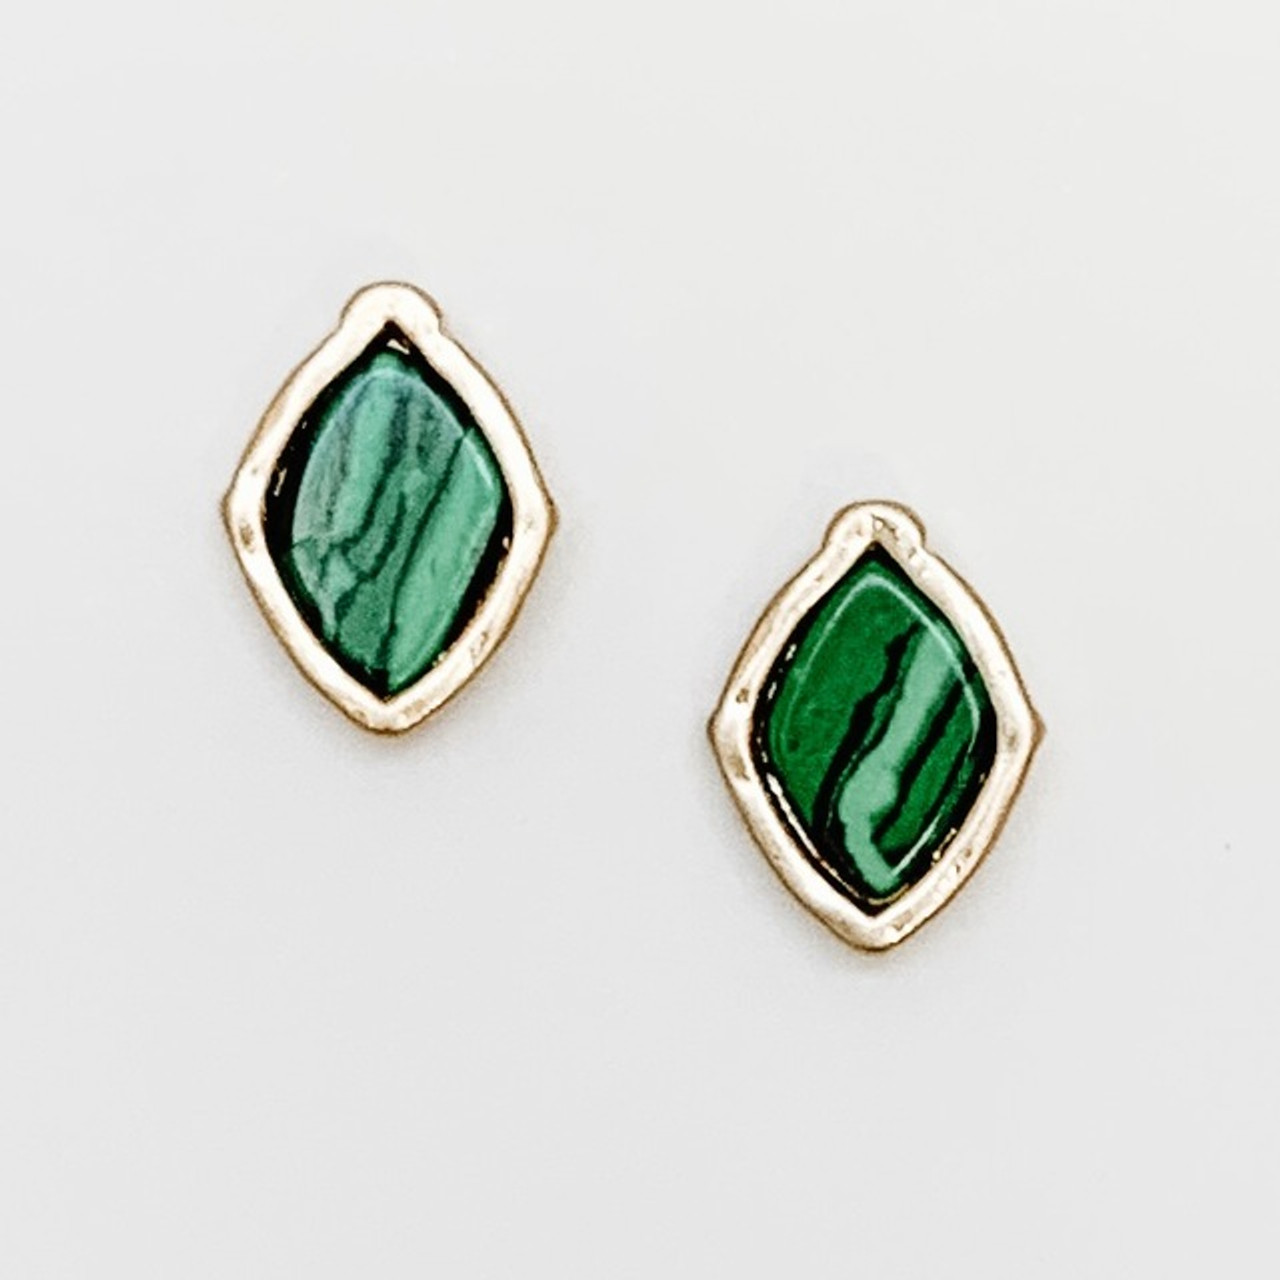 GREEN stone post earrings with gold frame, Nickel and lead free.